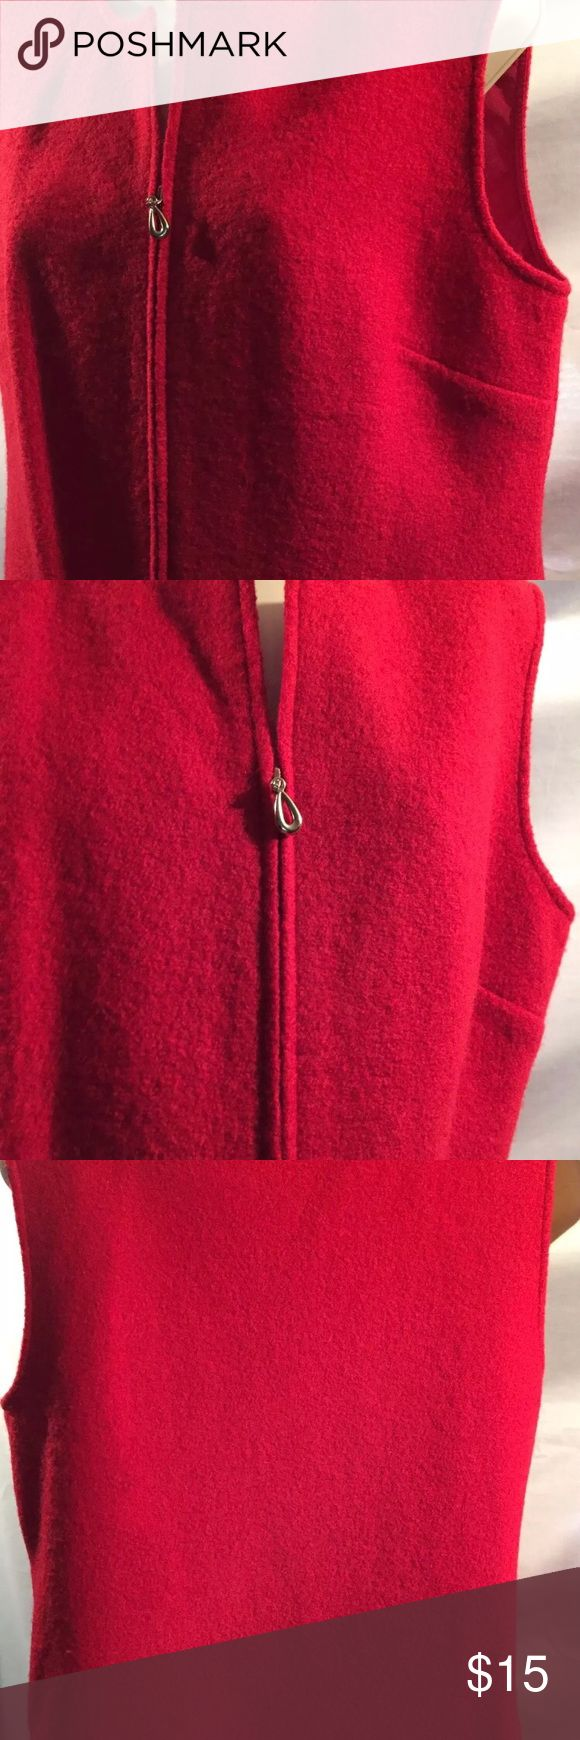 Women's Designers Originals Studio 100% Wool Vest This is a listing for a   Ladies Women's Designers Originals Studio 100% Wool Red Zippered Vest Size Med  Fiber Content: 100% Wool   Measurements:  From back armpit to armpit 20 inches Length from top back to bottom of vest New with tags's still attached Zips in front but not all the way to top. Leaving a V Neck See pictures for visual details  Thank you for your interest, and for looking.   B7 Jackets & Coats Vests